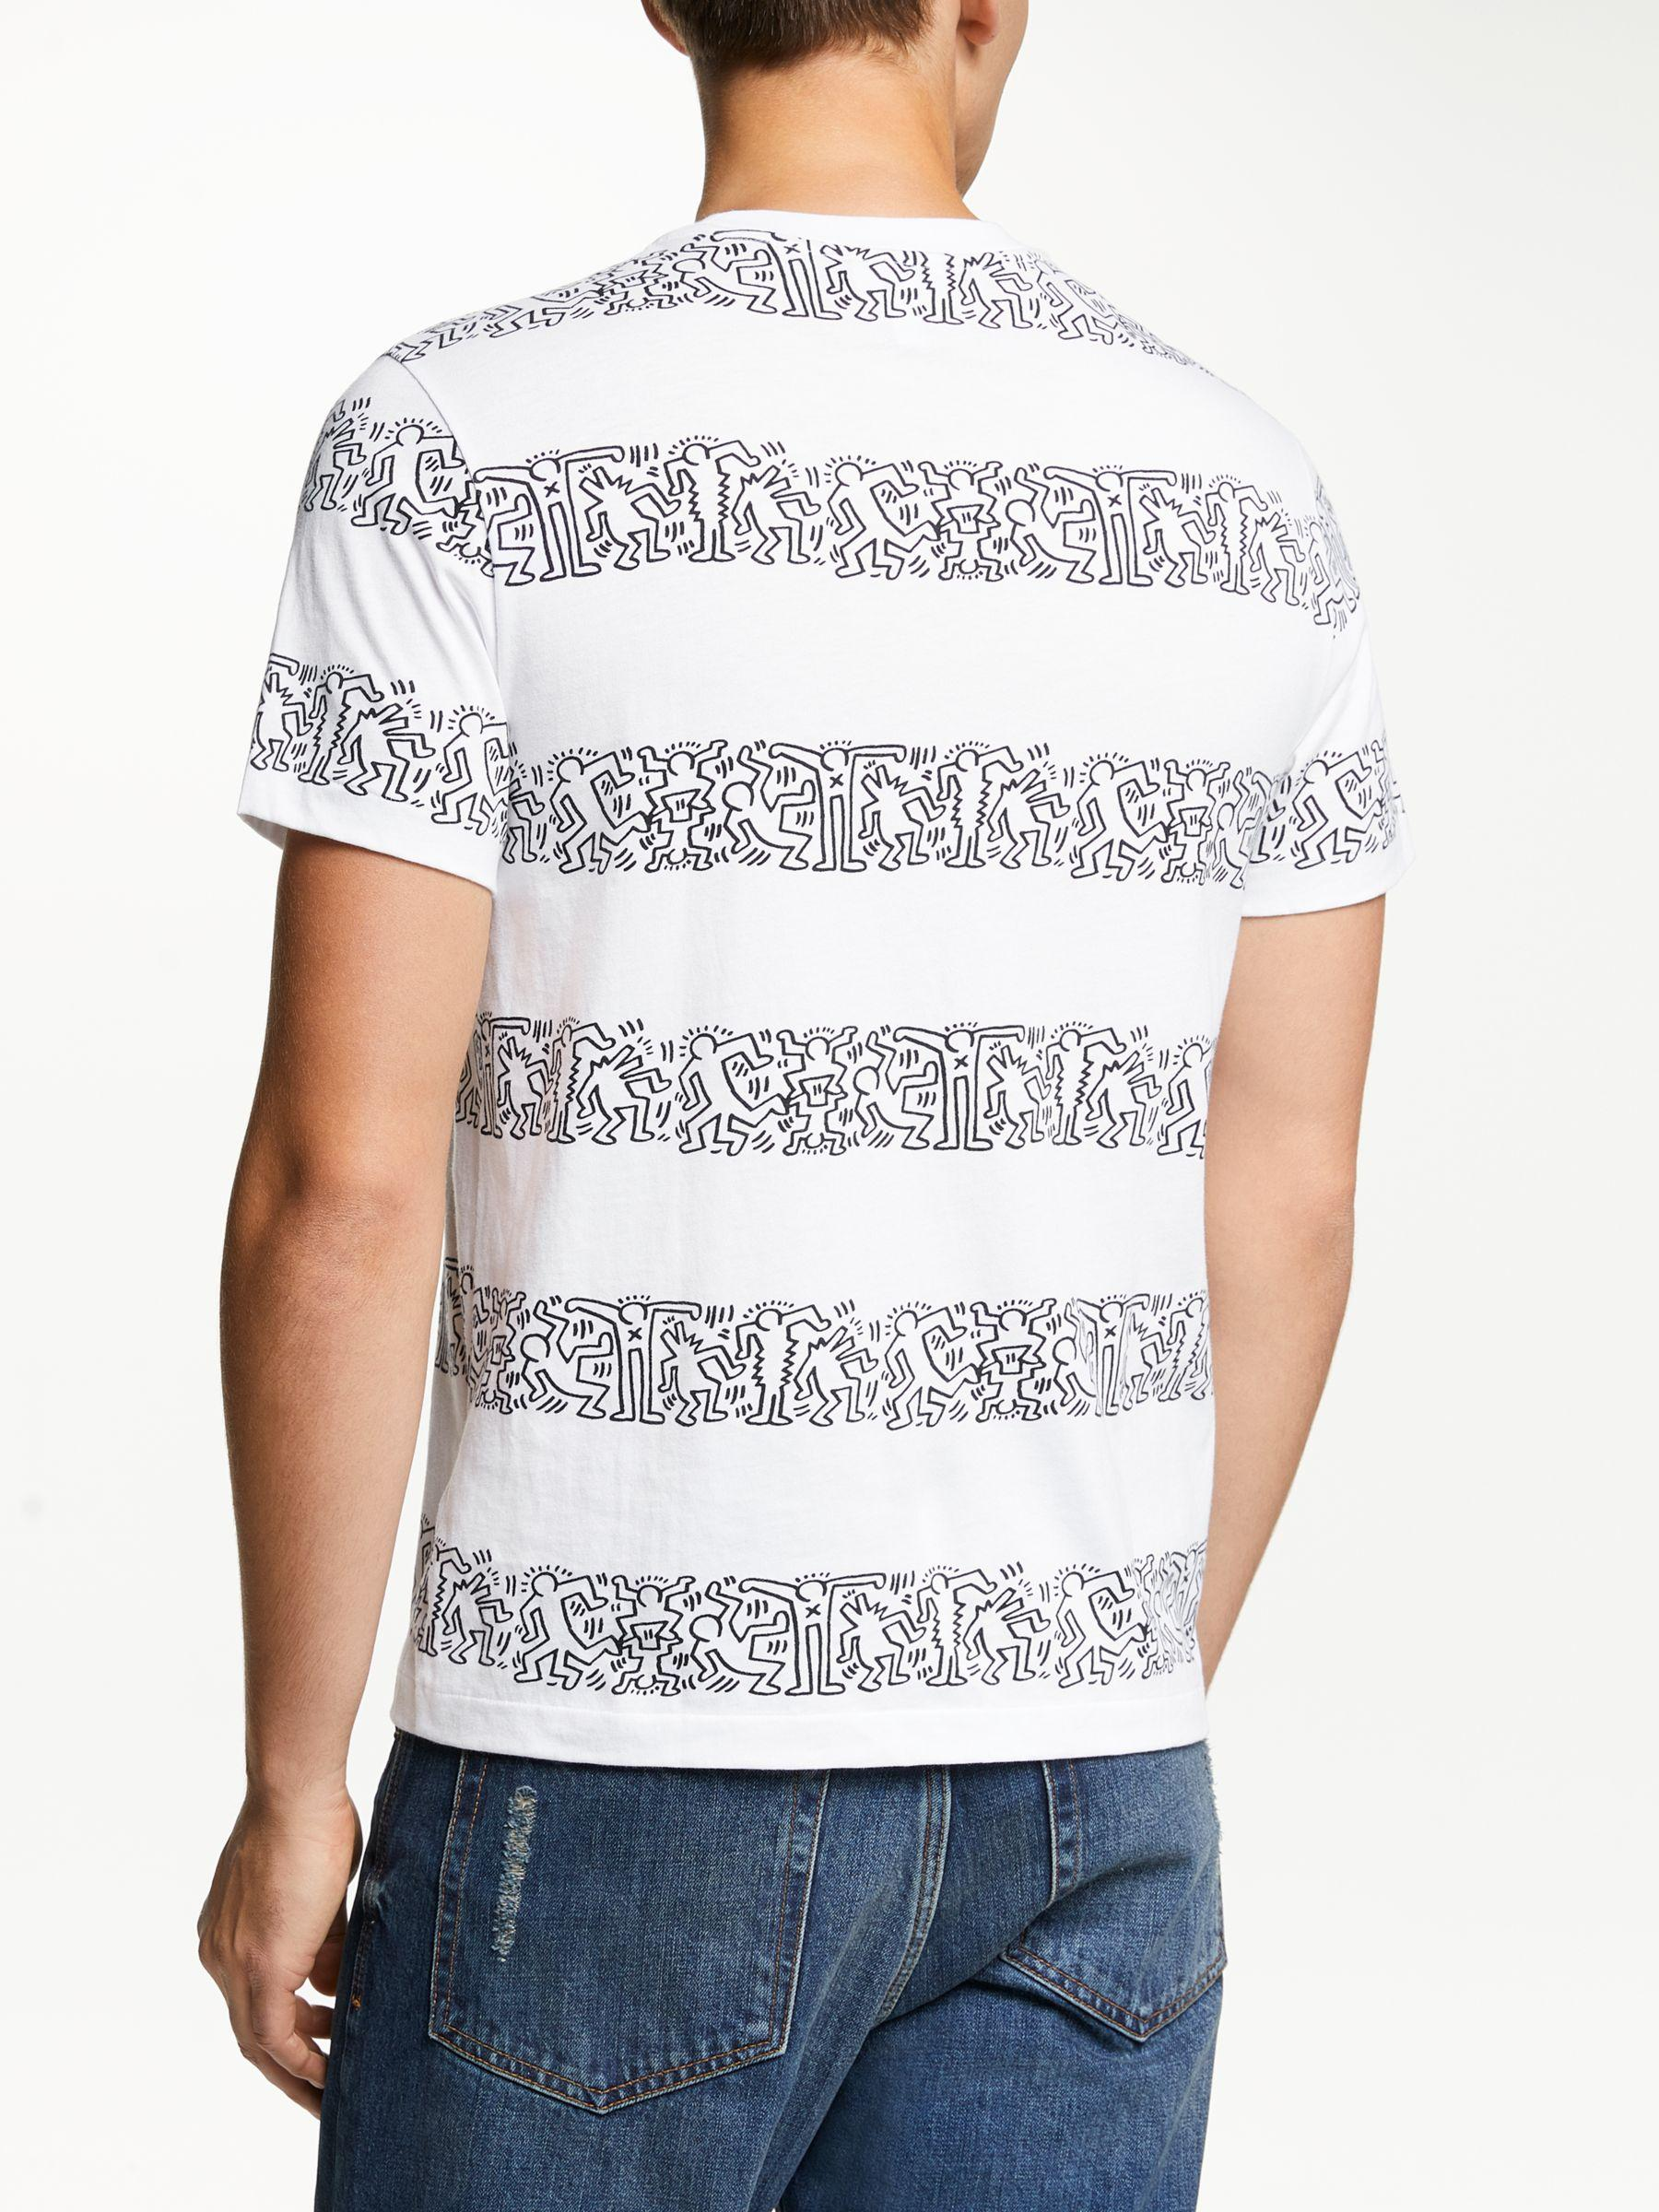 a4c22b4008a Lacoste X Keith Haring Graphic Print Stripe T-shirt in Blue for Men - Lyst